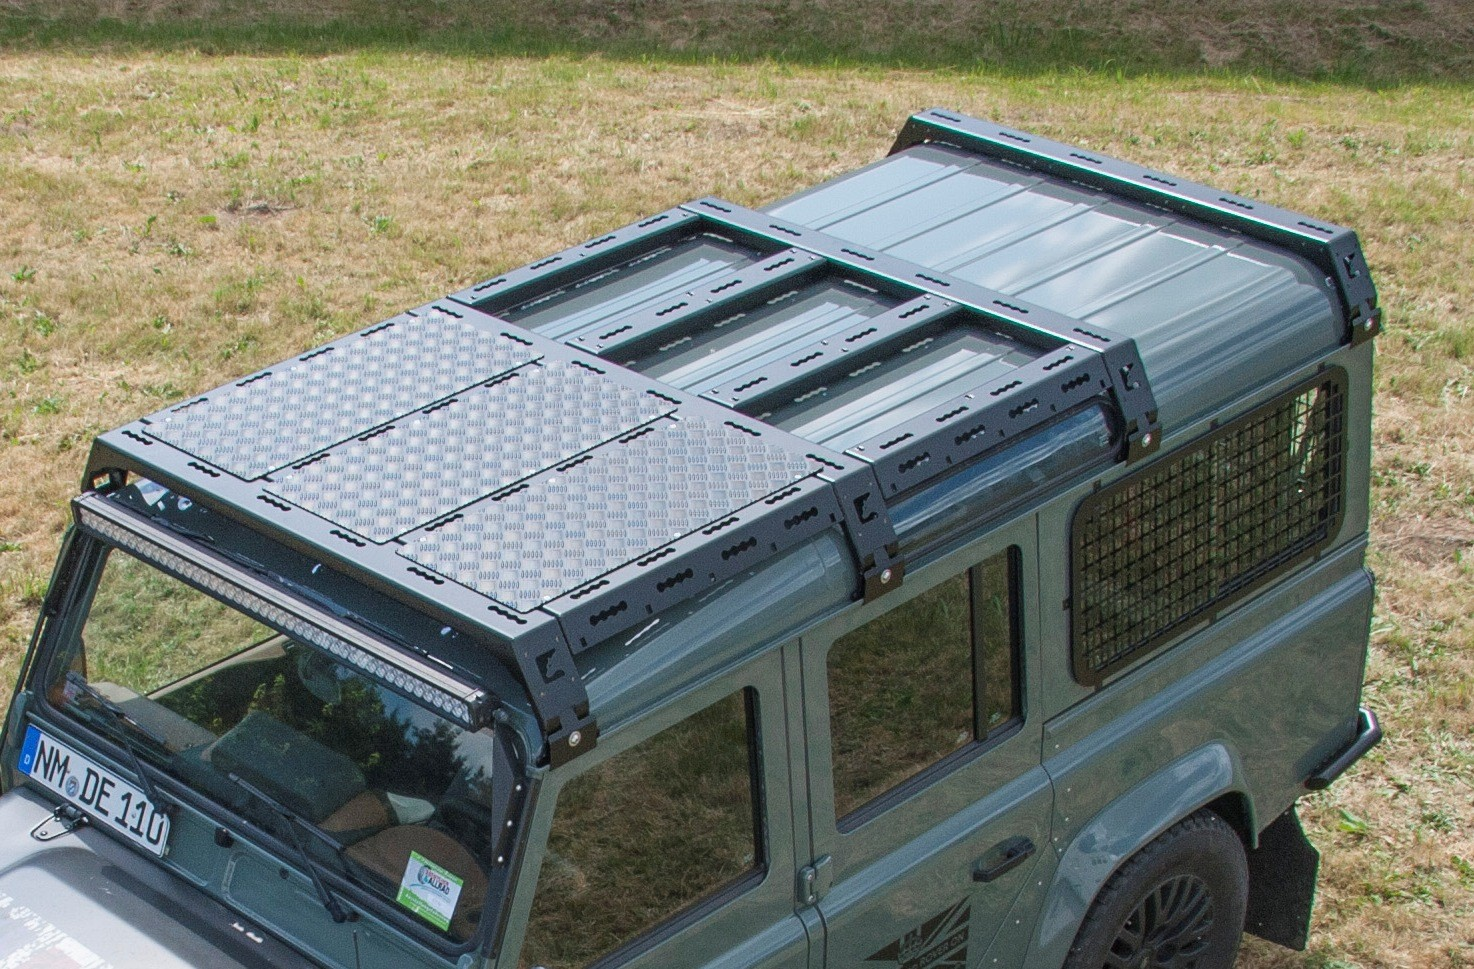 4x4 outdoor tuning cargobear modular roof rack for for Prefab roof